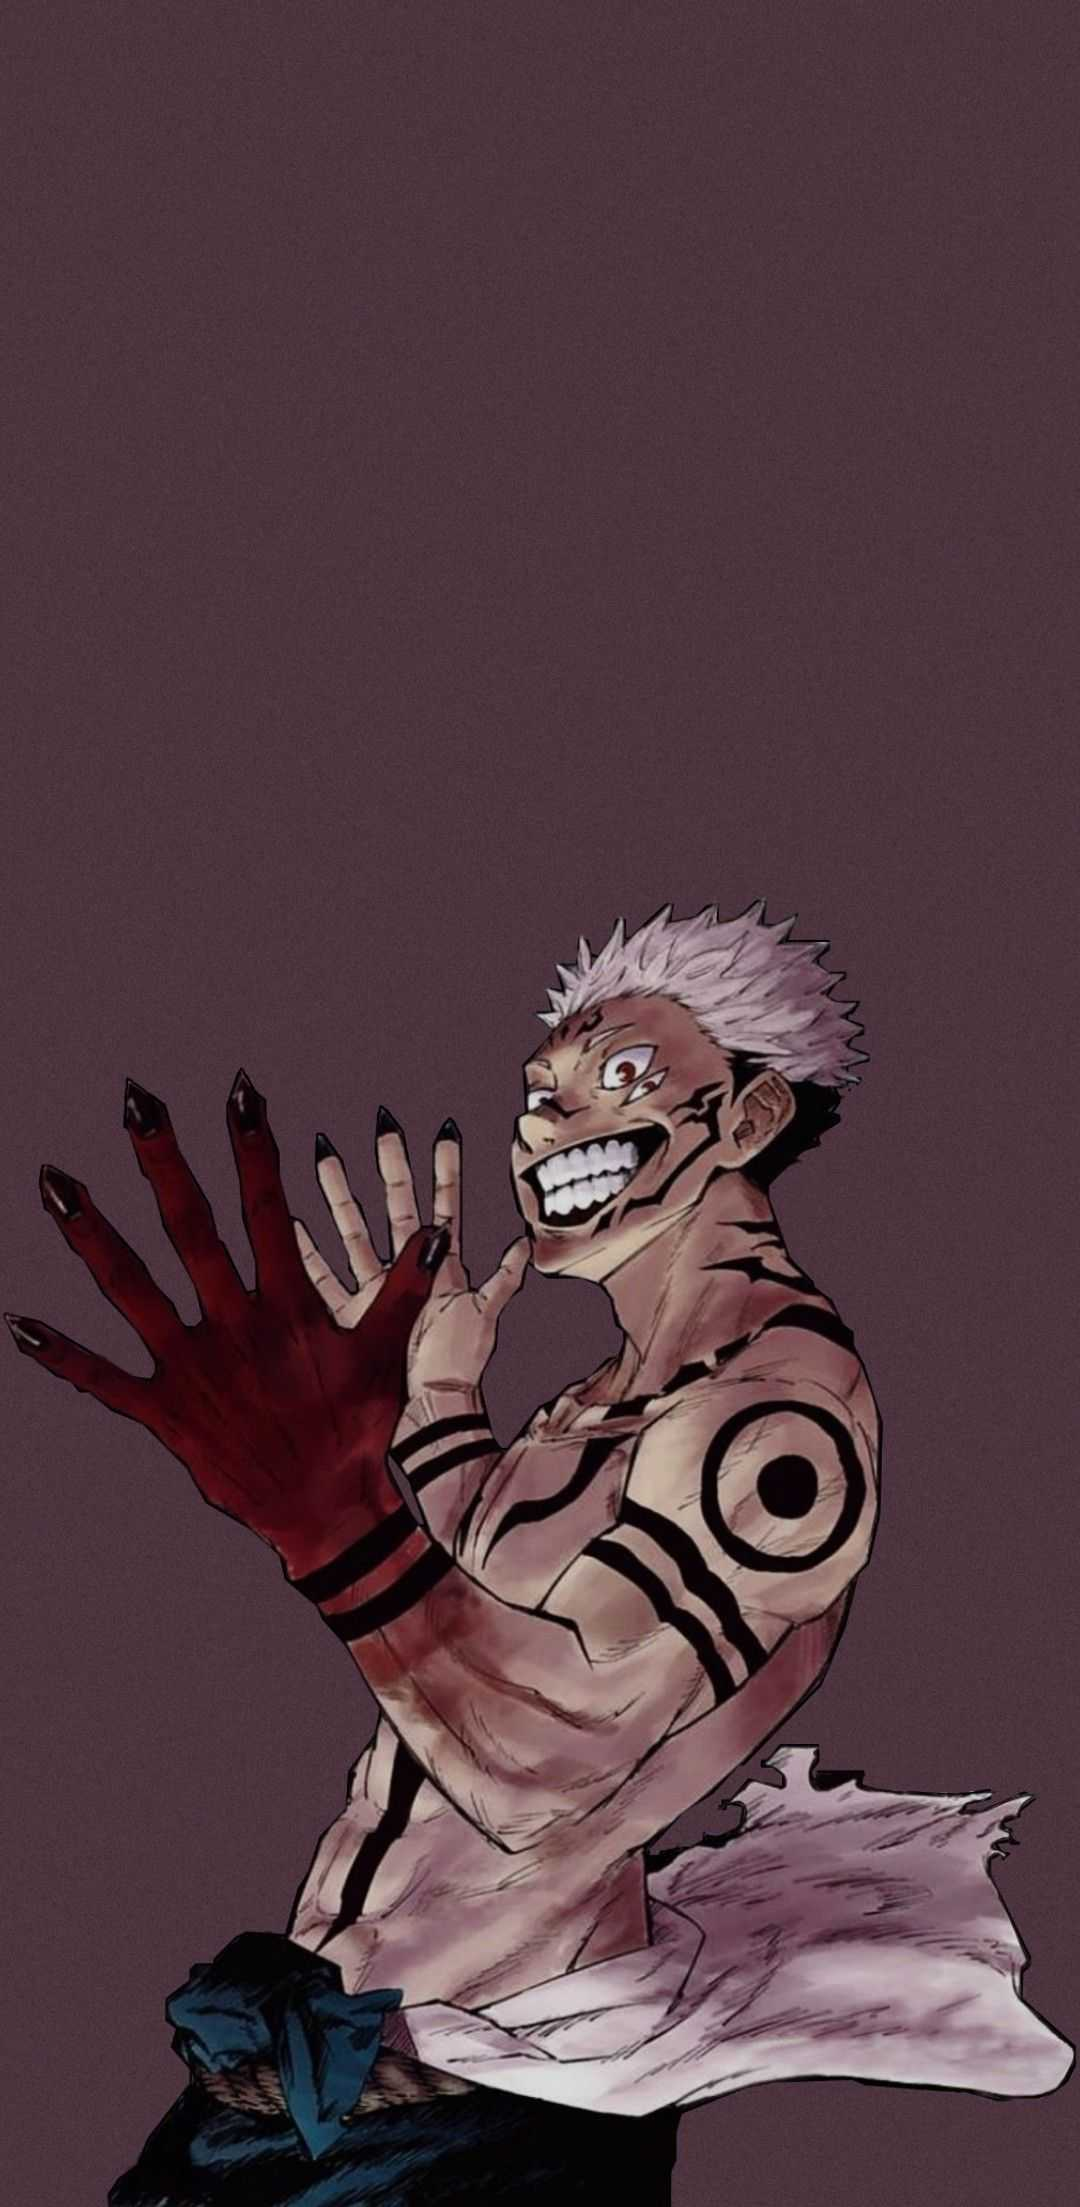 HD Jujutsu Kaisen Wallpaper 1